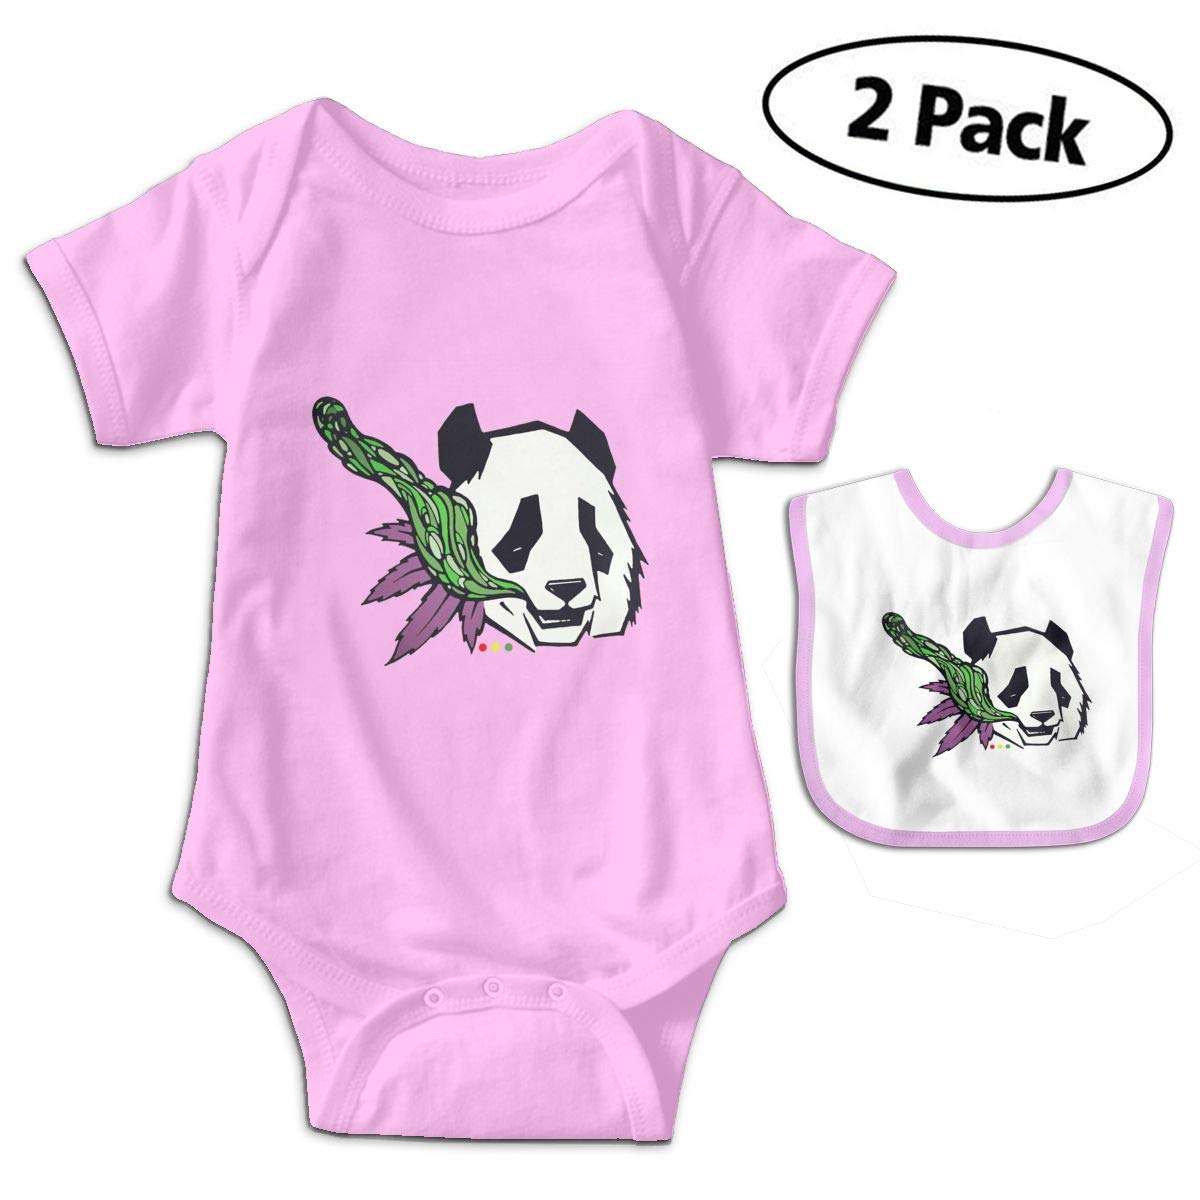 Panda Bear Weed Leaf Newborn Unisex Baby Cotton Bodysuits Rompers Outfits